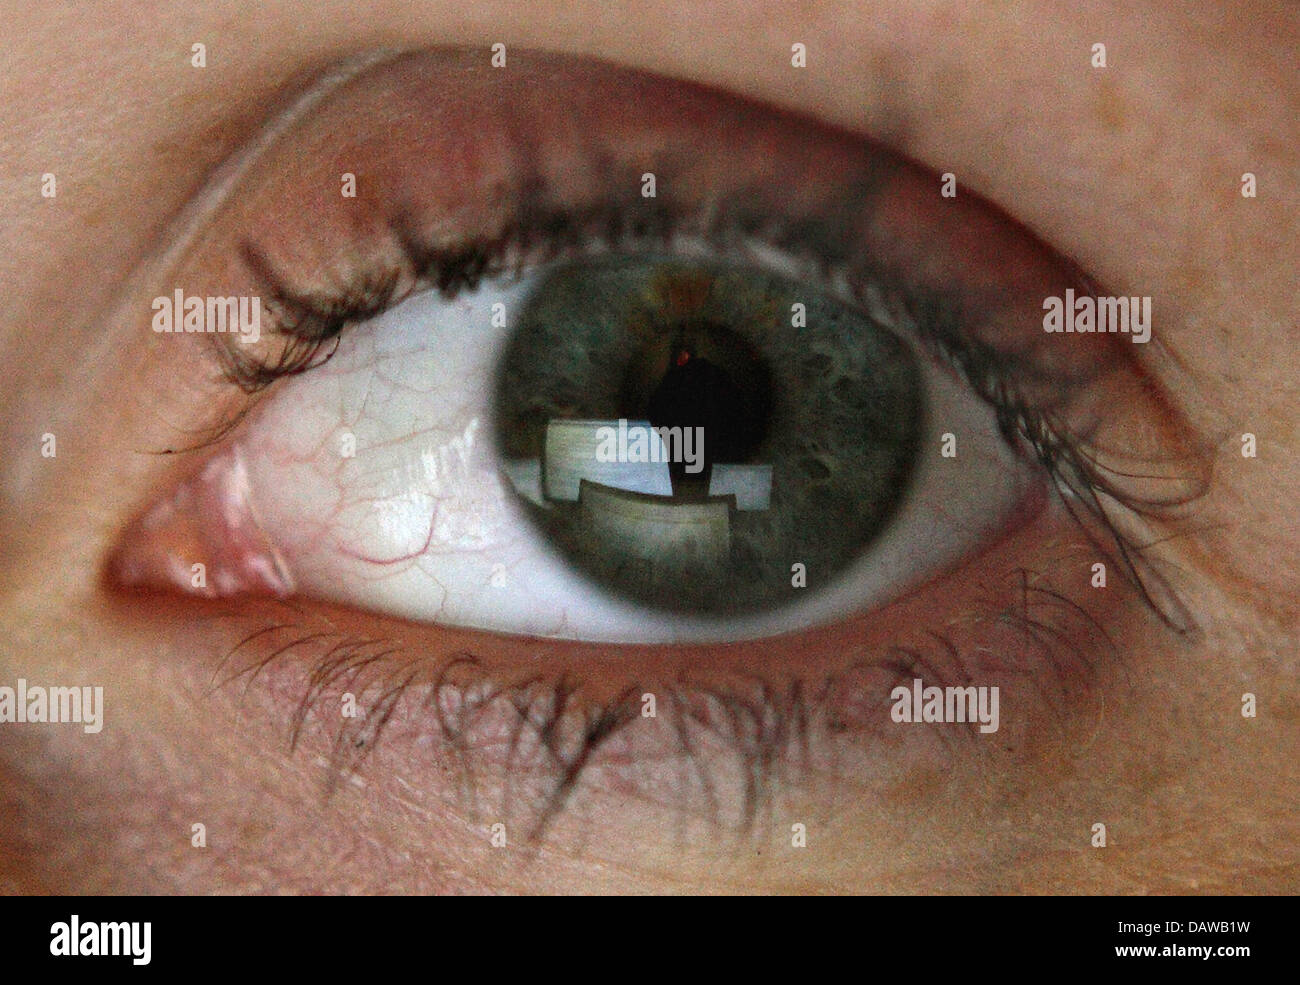 Computer screens are reflected in the eye of woman in Hamburg, Germany, 02 December 2006. Photo: Sebastian Widmann - Stock Image